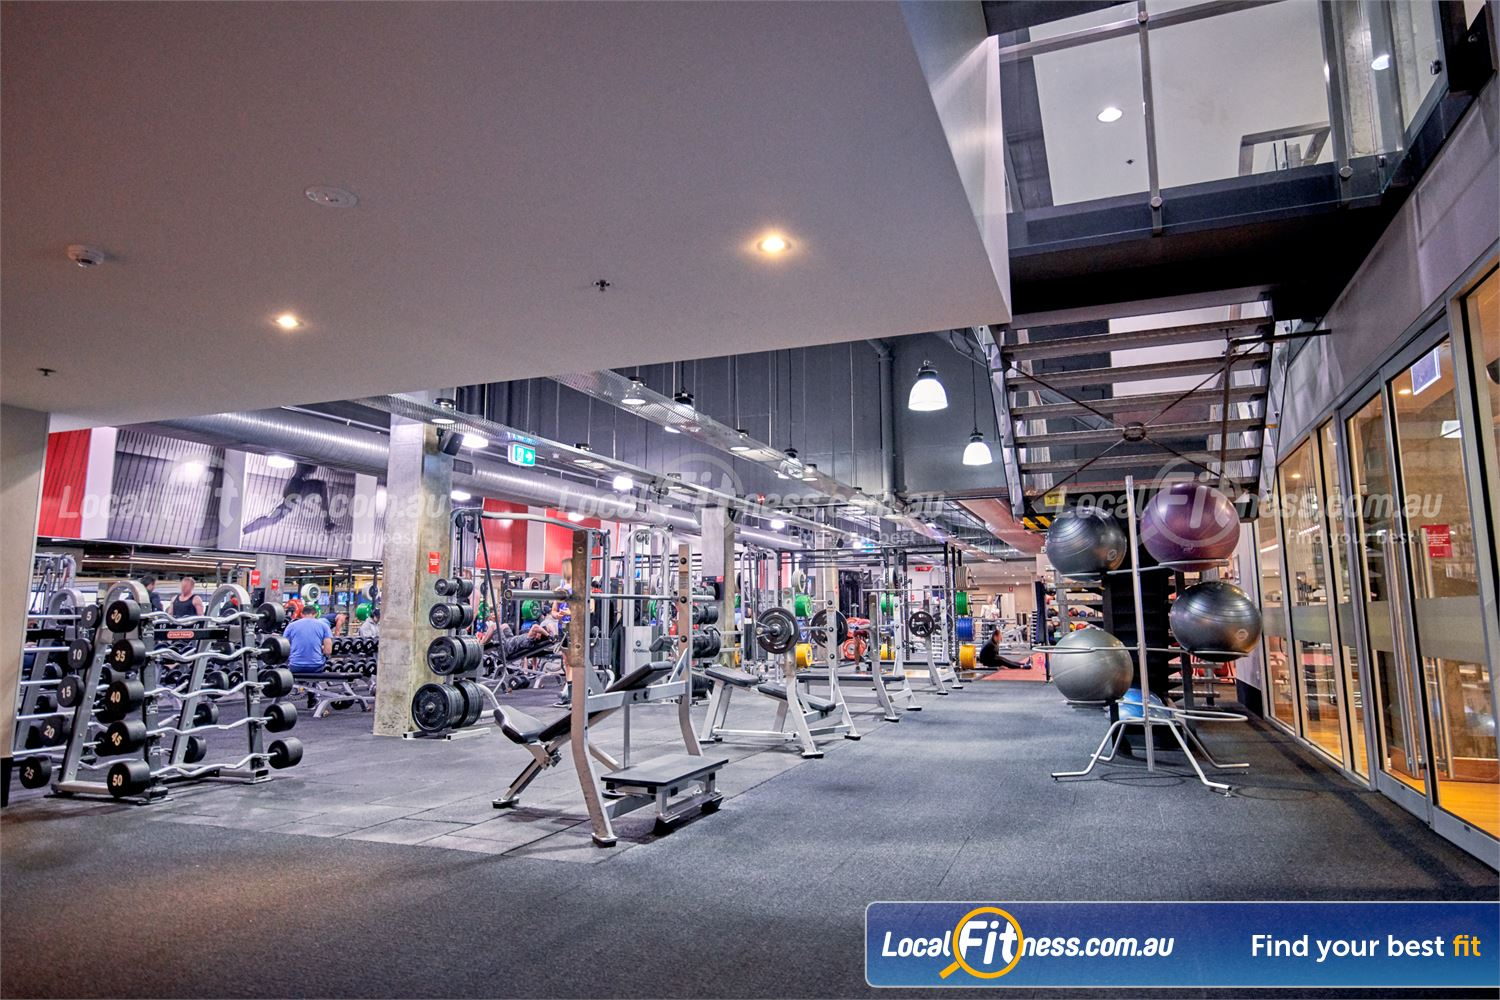 Fitness First Victoria Gardens Richmond Our free-weights area is fully equipped with dumbbells, barbells, benches and more.